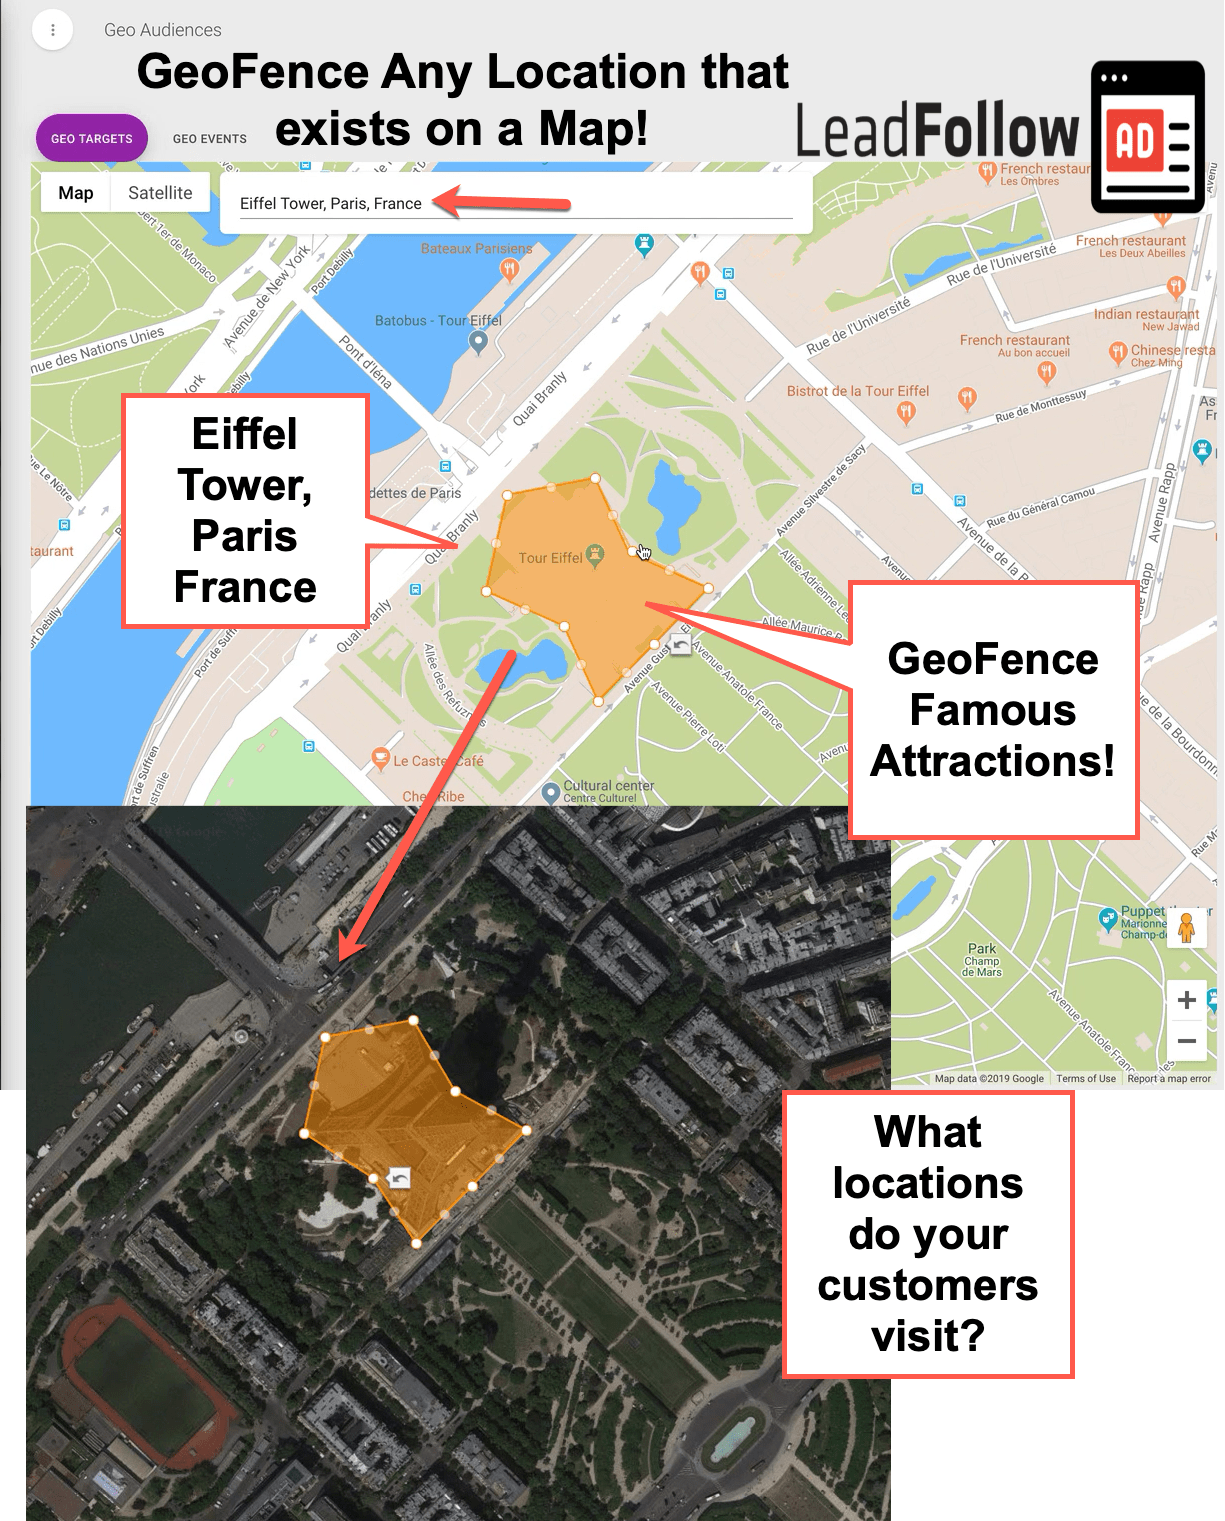 GeoFence Geotargeting Audience Event locations